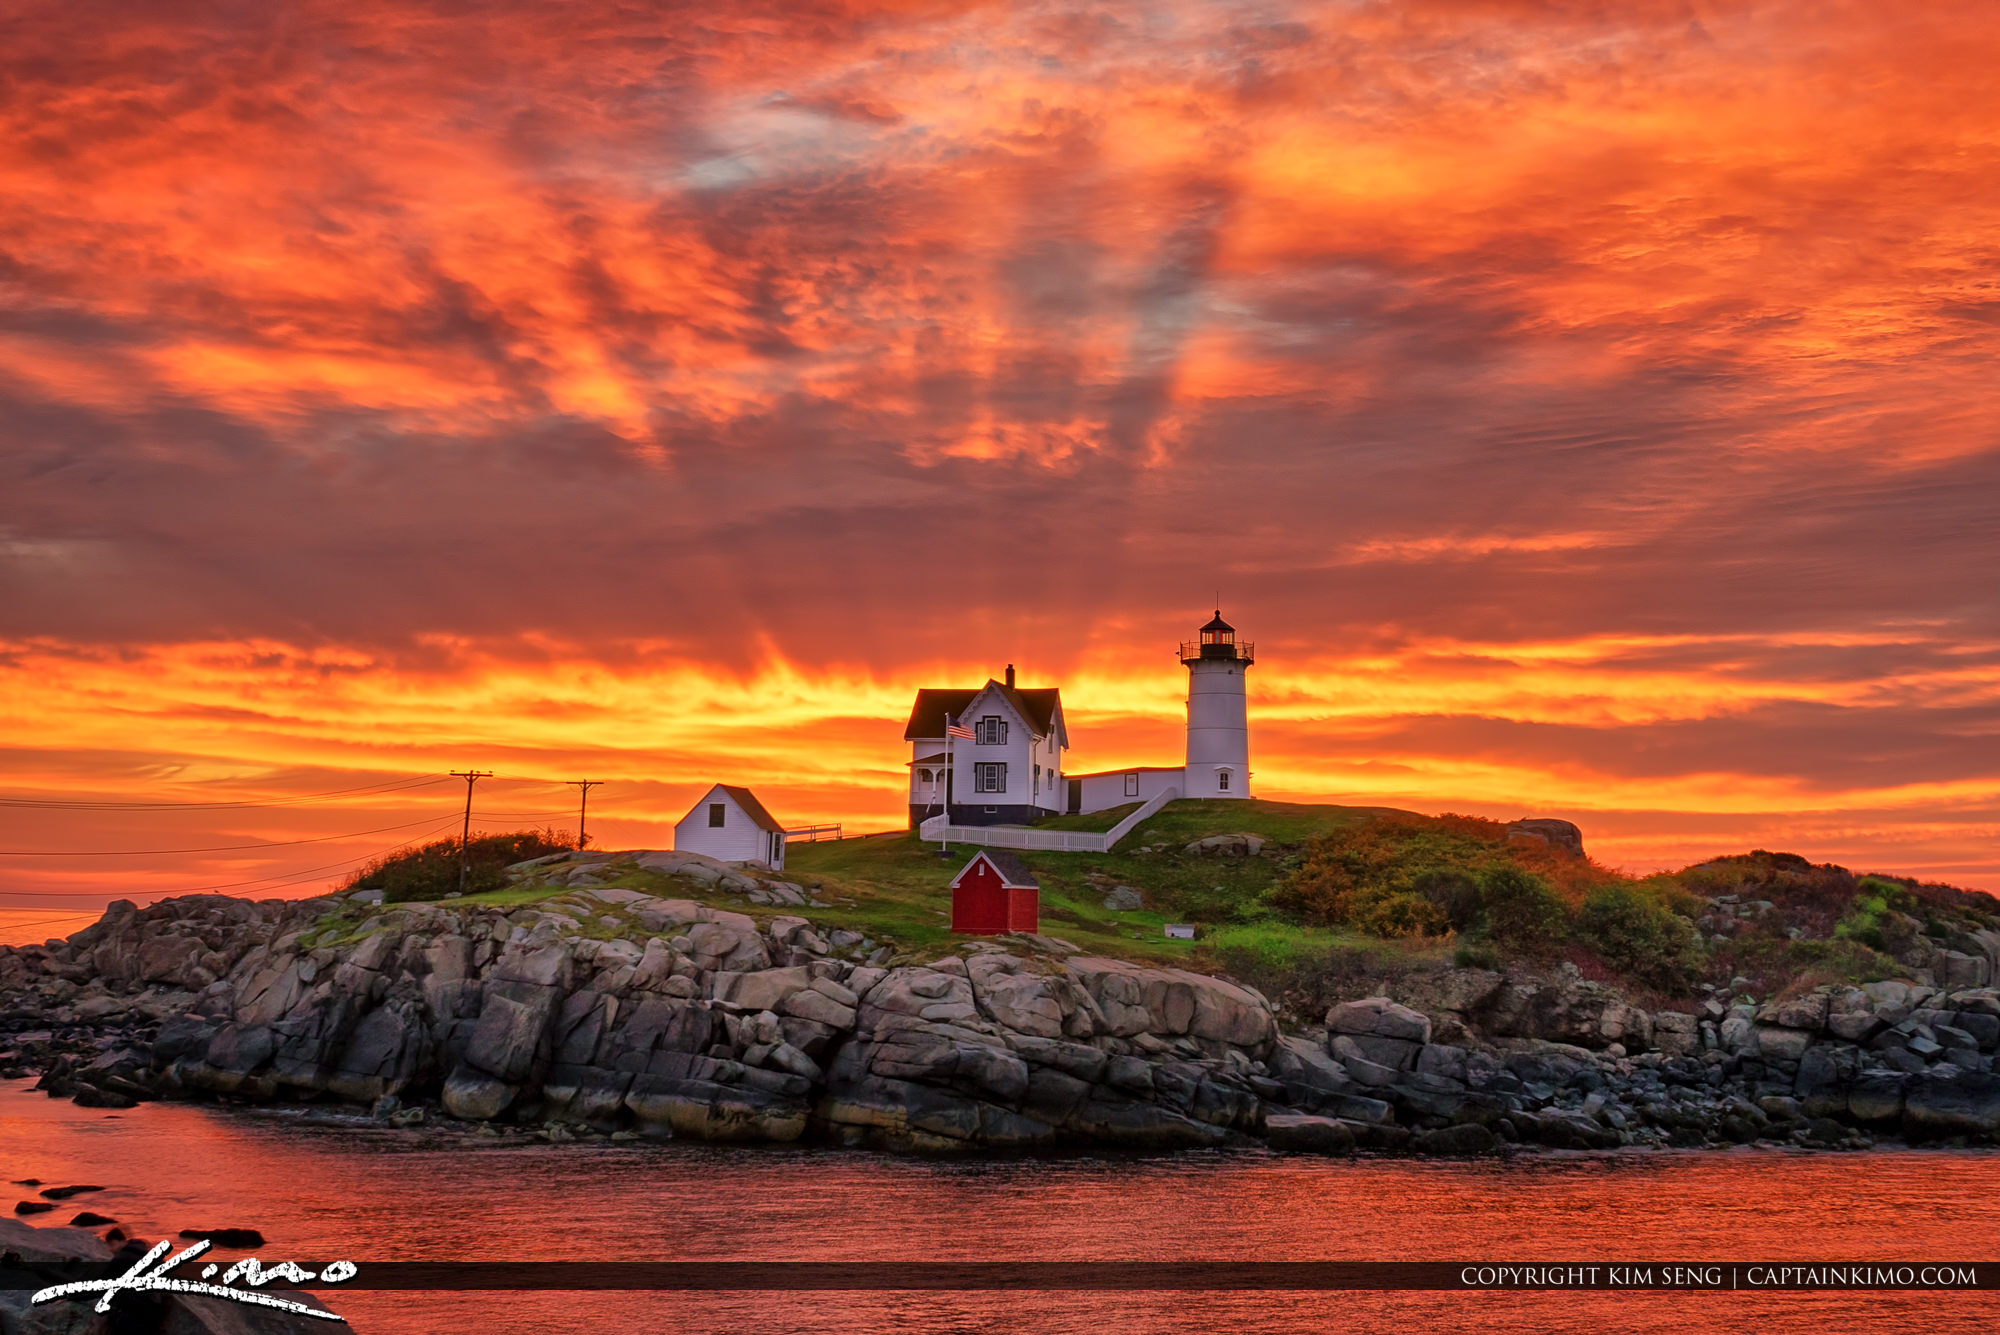 Free photo: Lighthouse sunrise - Rocks, Safety, Risk - Free Download ...